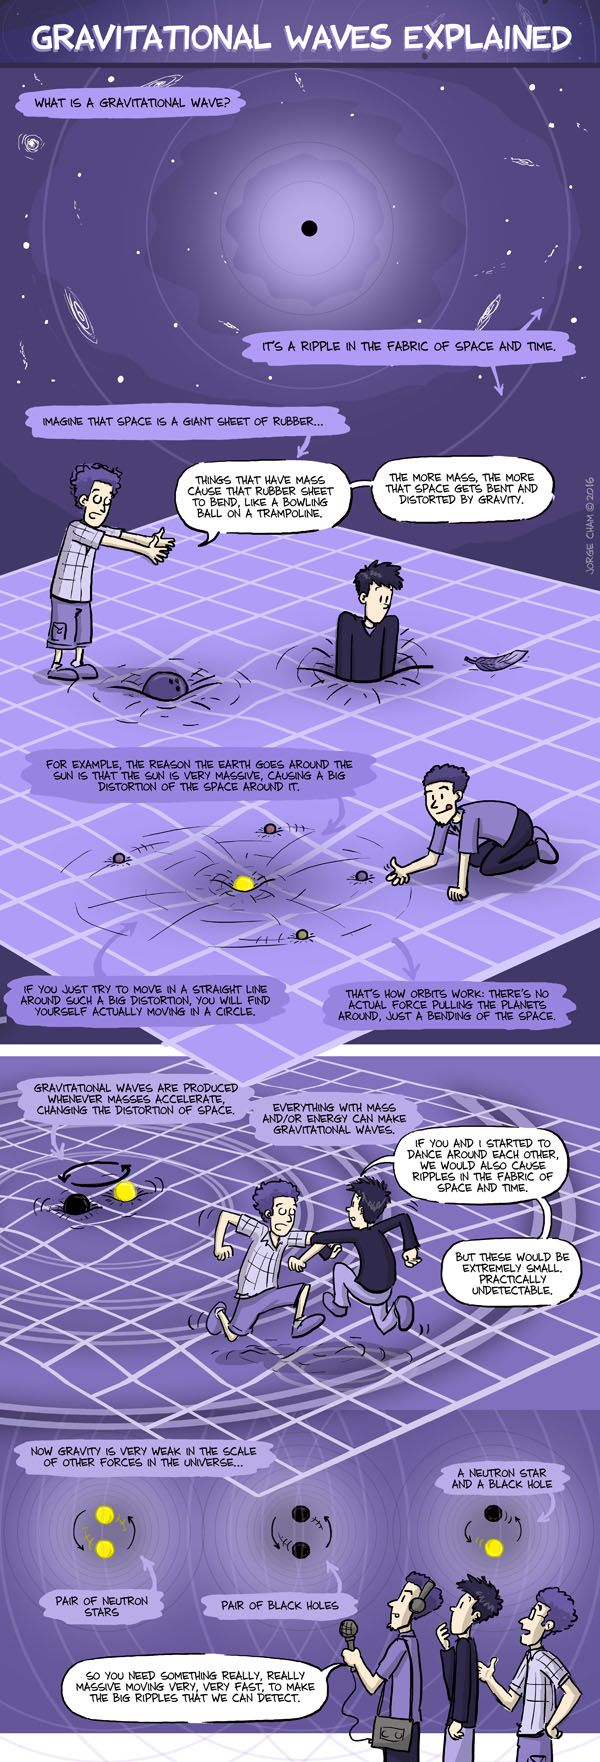 PHD Comics: Gravitational Waves Explained